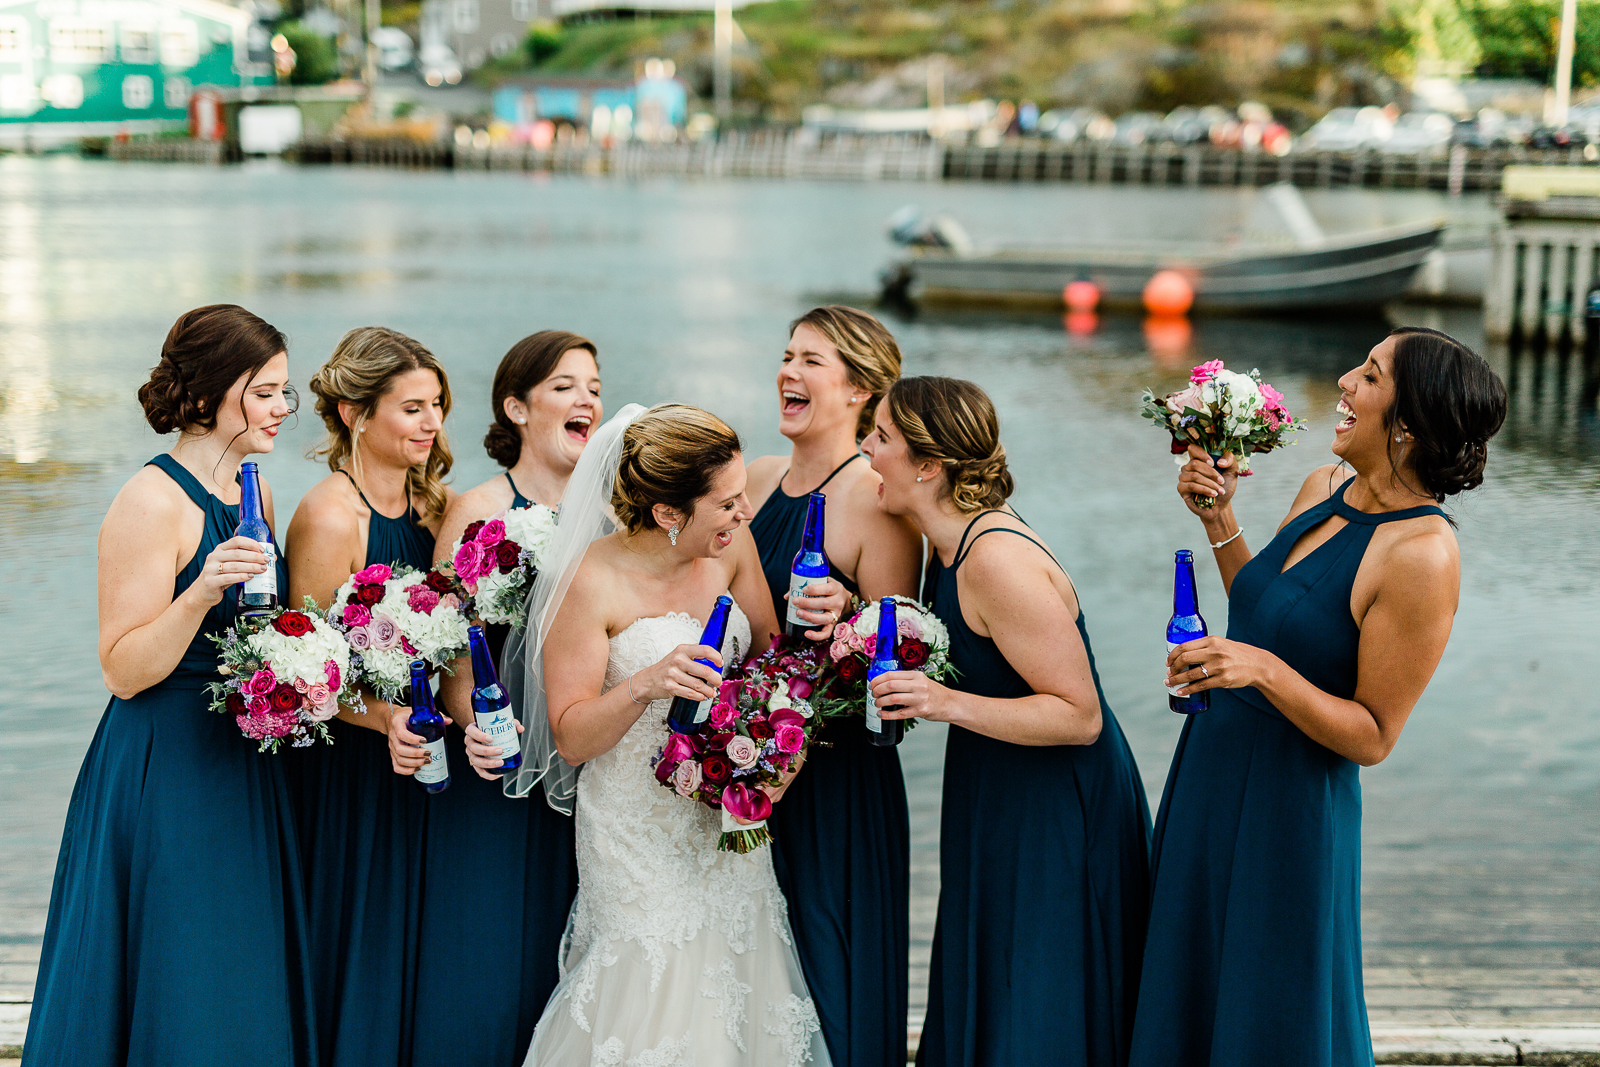 best2018-st-johns-wedding-photographer-77.jpg